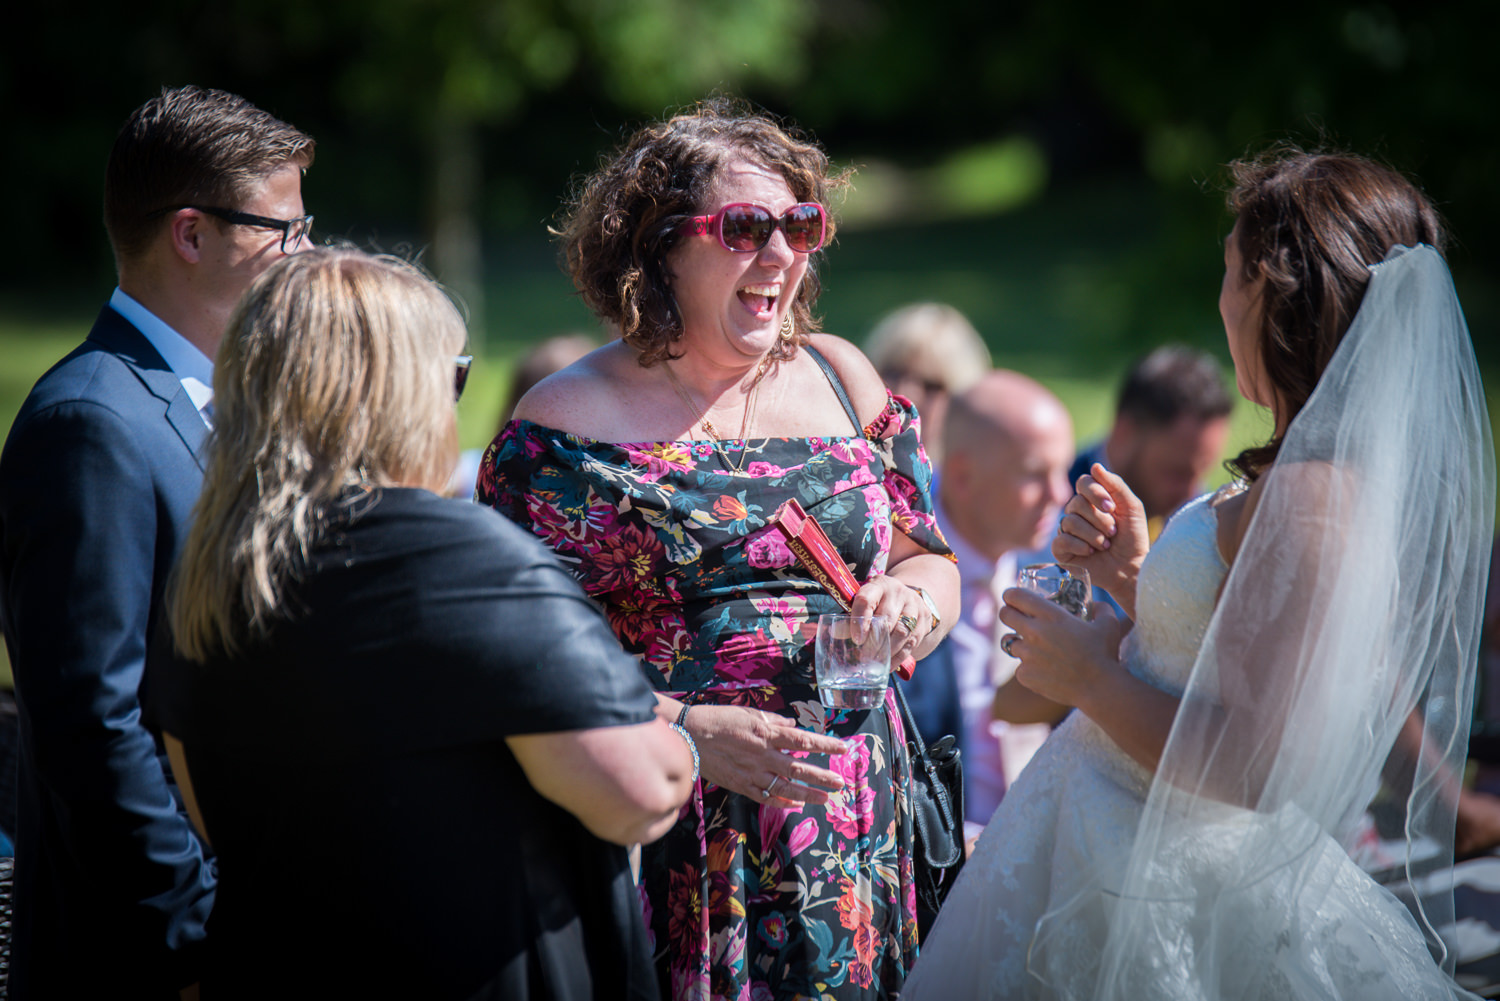 Sunshine, giggles and Pims for the guests at Ashdown Park Hotel wedding